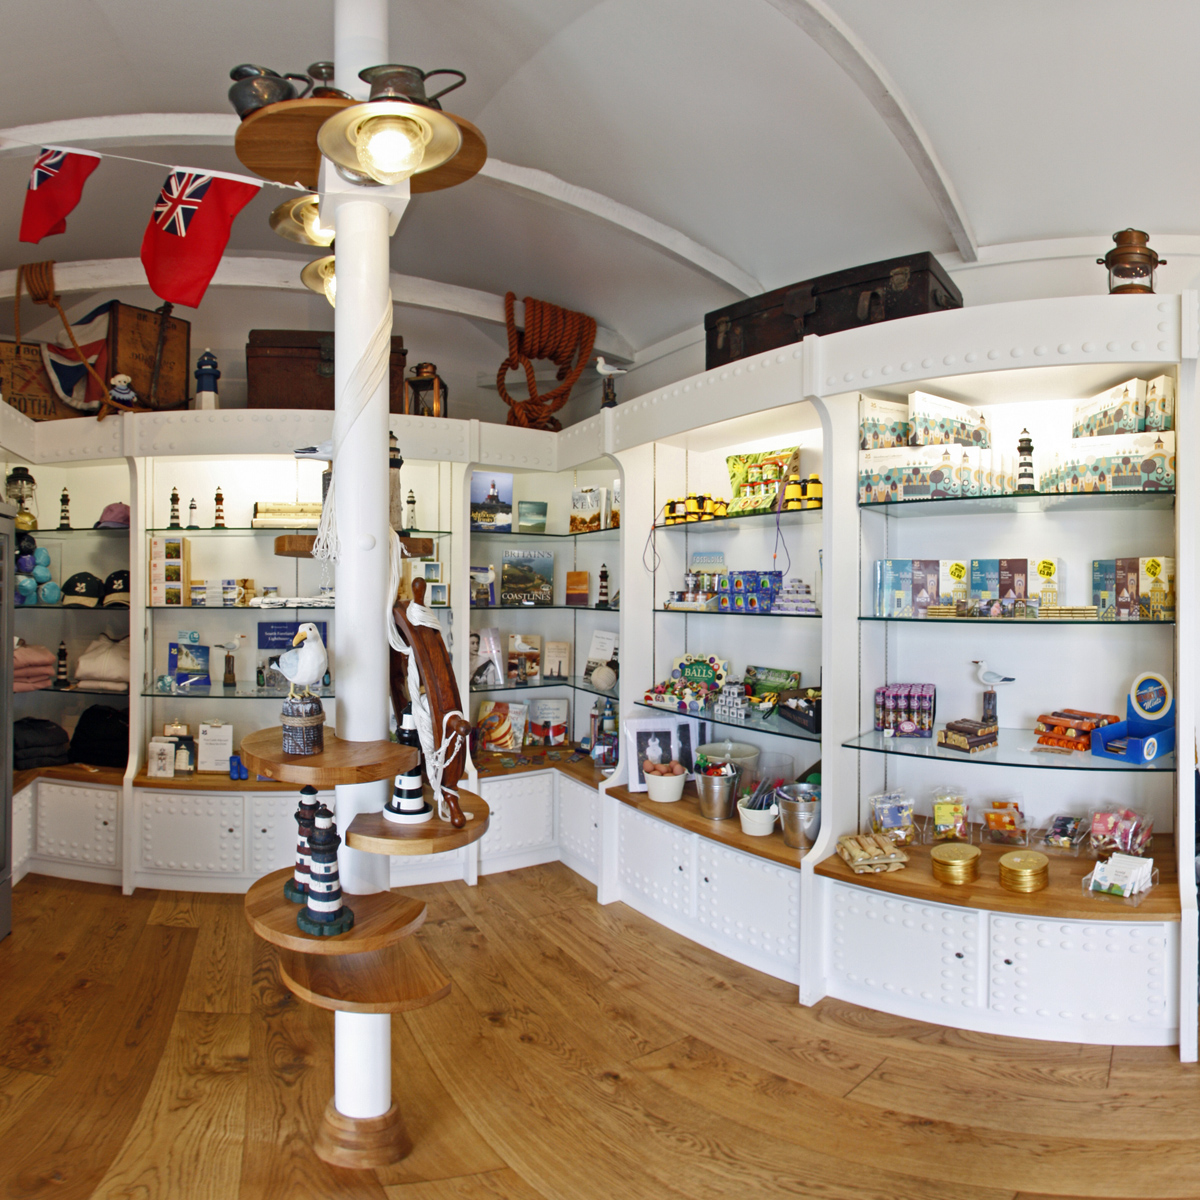 South Foreland Lighthouse shopfittings